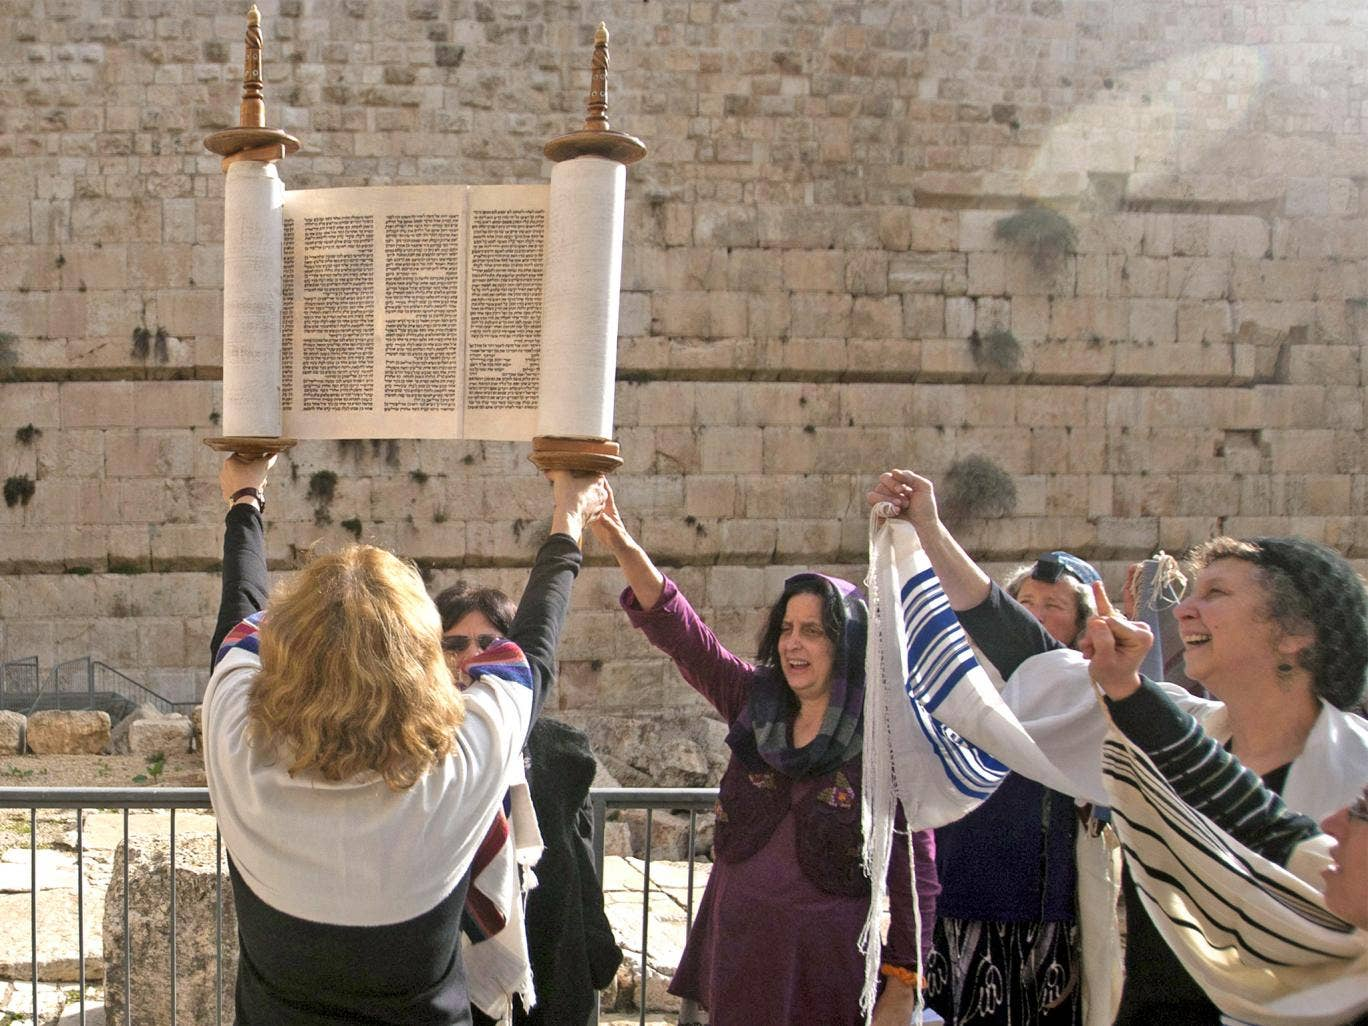 Israeli protesters hold a Torah and pray near the Western Wall